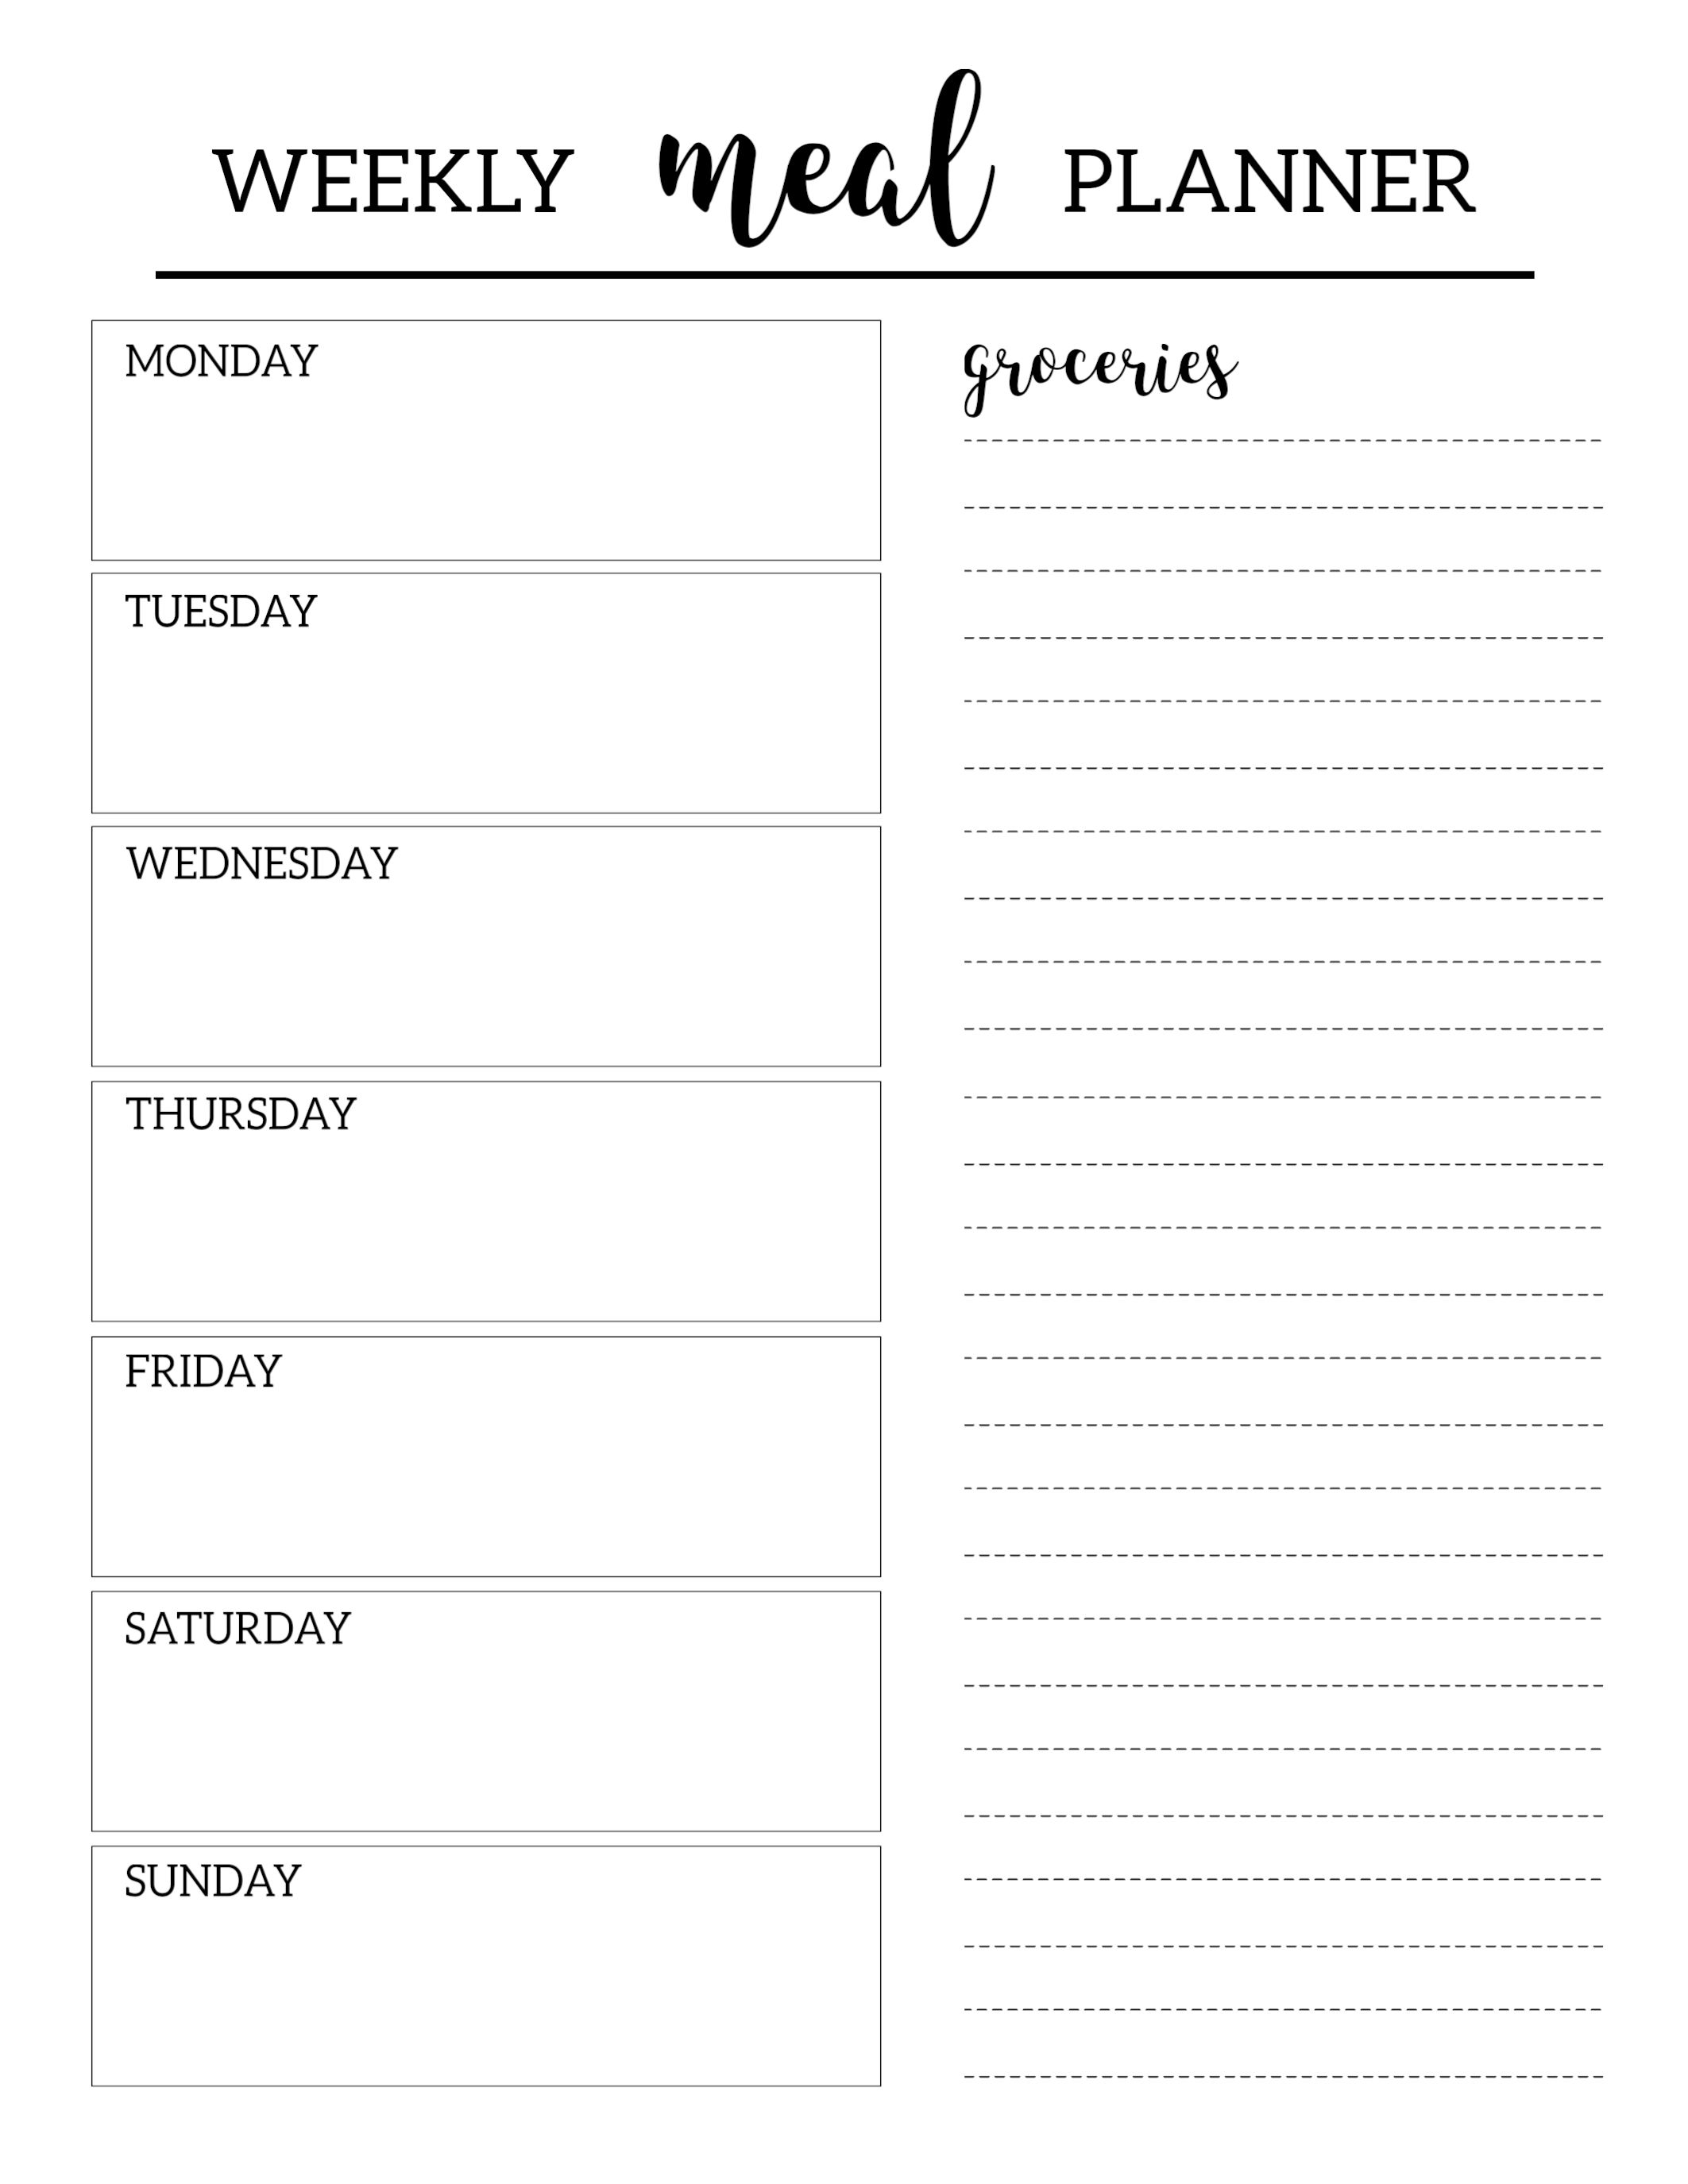 picture relating to Meal Planner Printable identified as Cost-free Printable Evening meal Planner Template Printables Supper